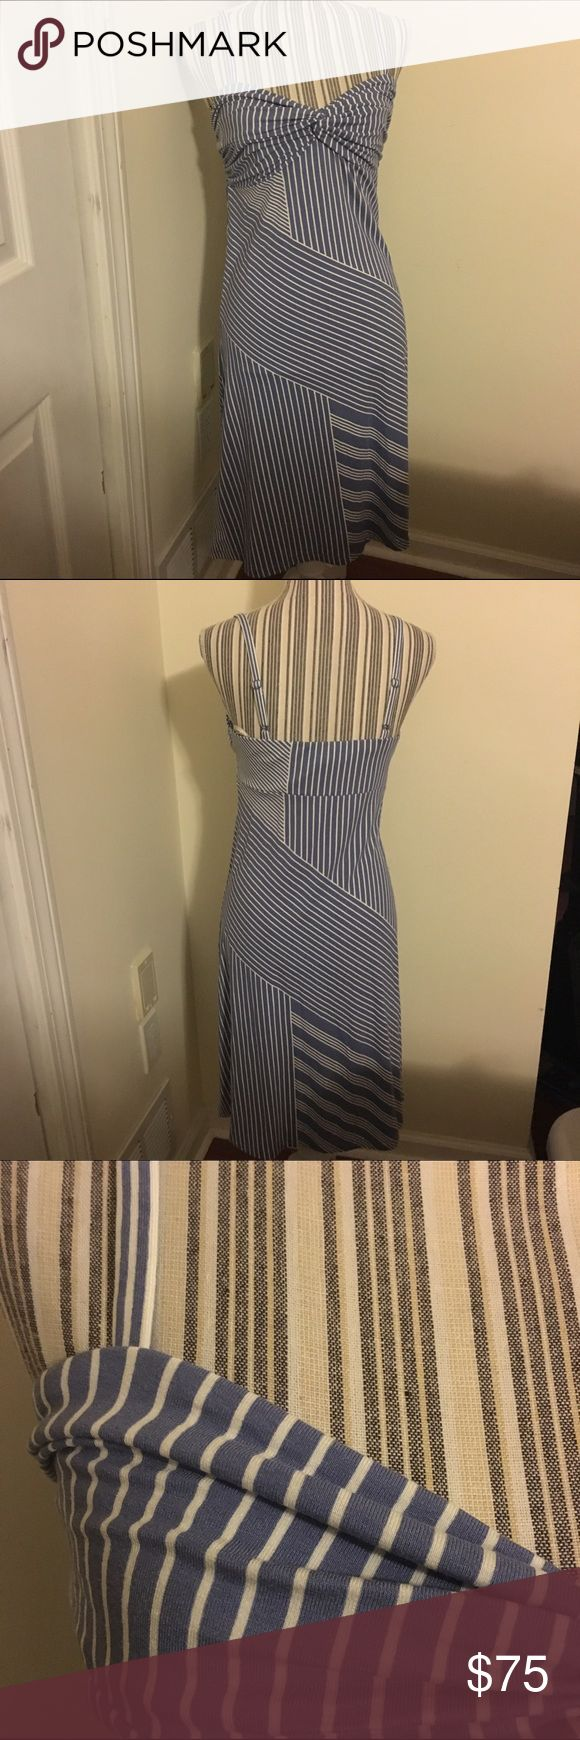 Tommy Bahama Striped Short Dress Light Blue and White dress with adjustable straps. Super cute and comfy, stretchy material. New with tags. Tommy Bahama Dresses